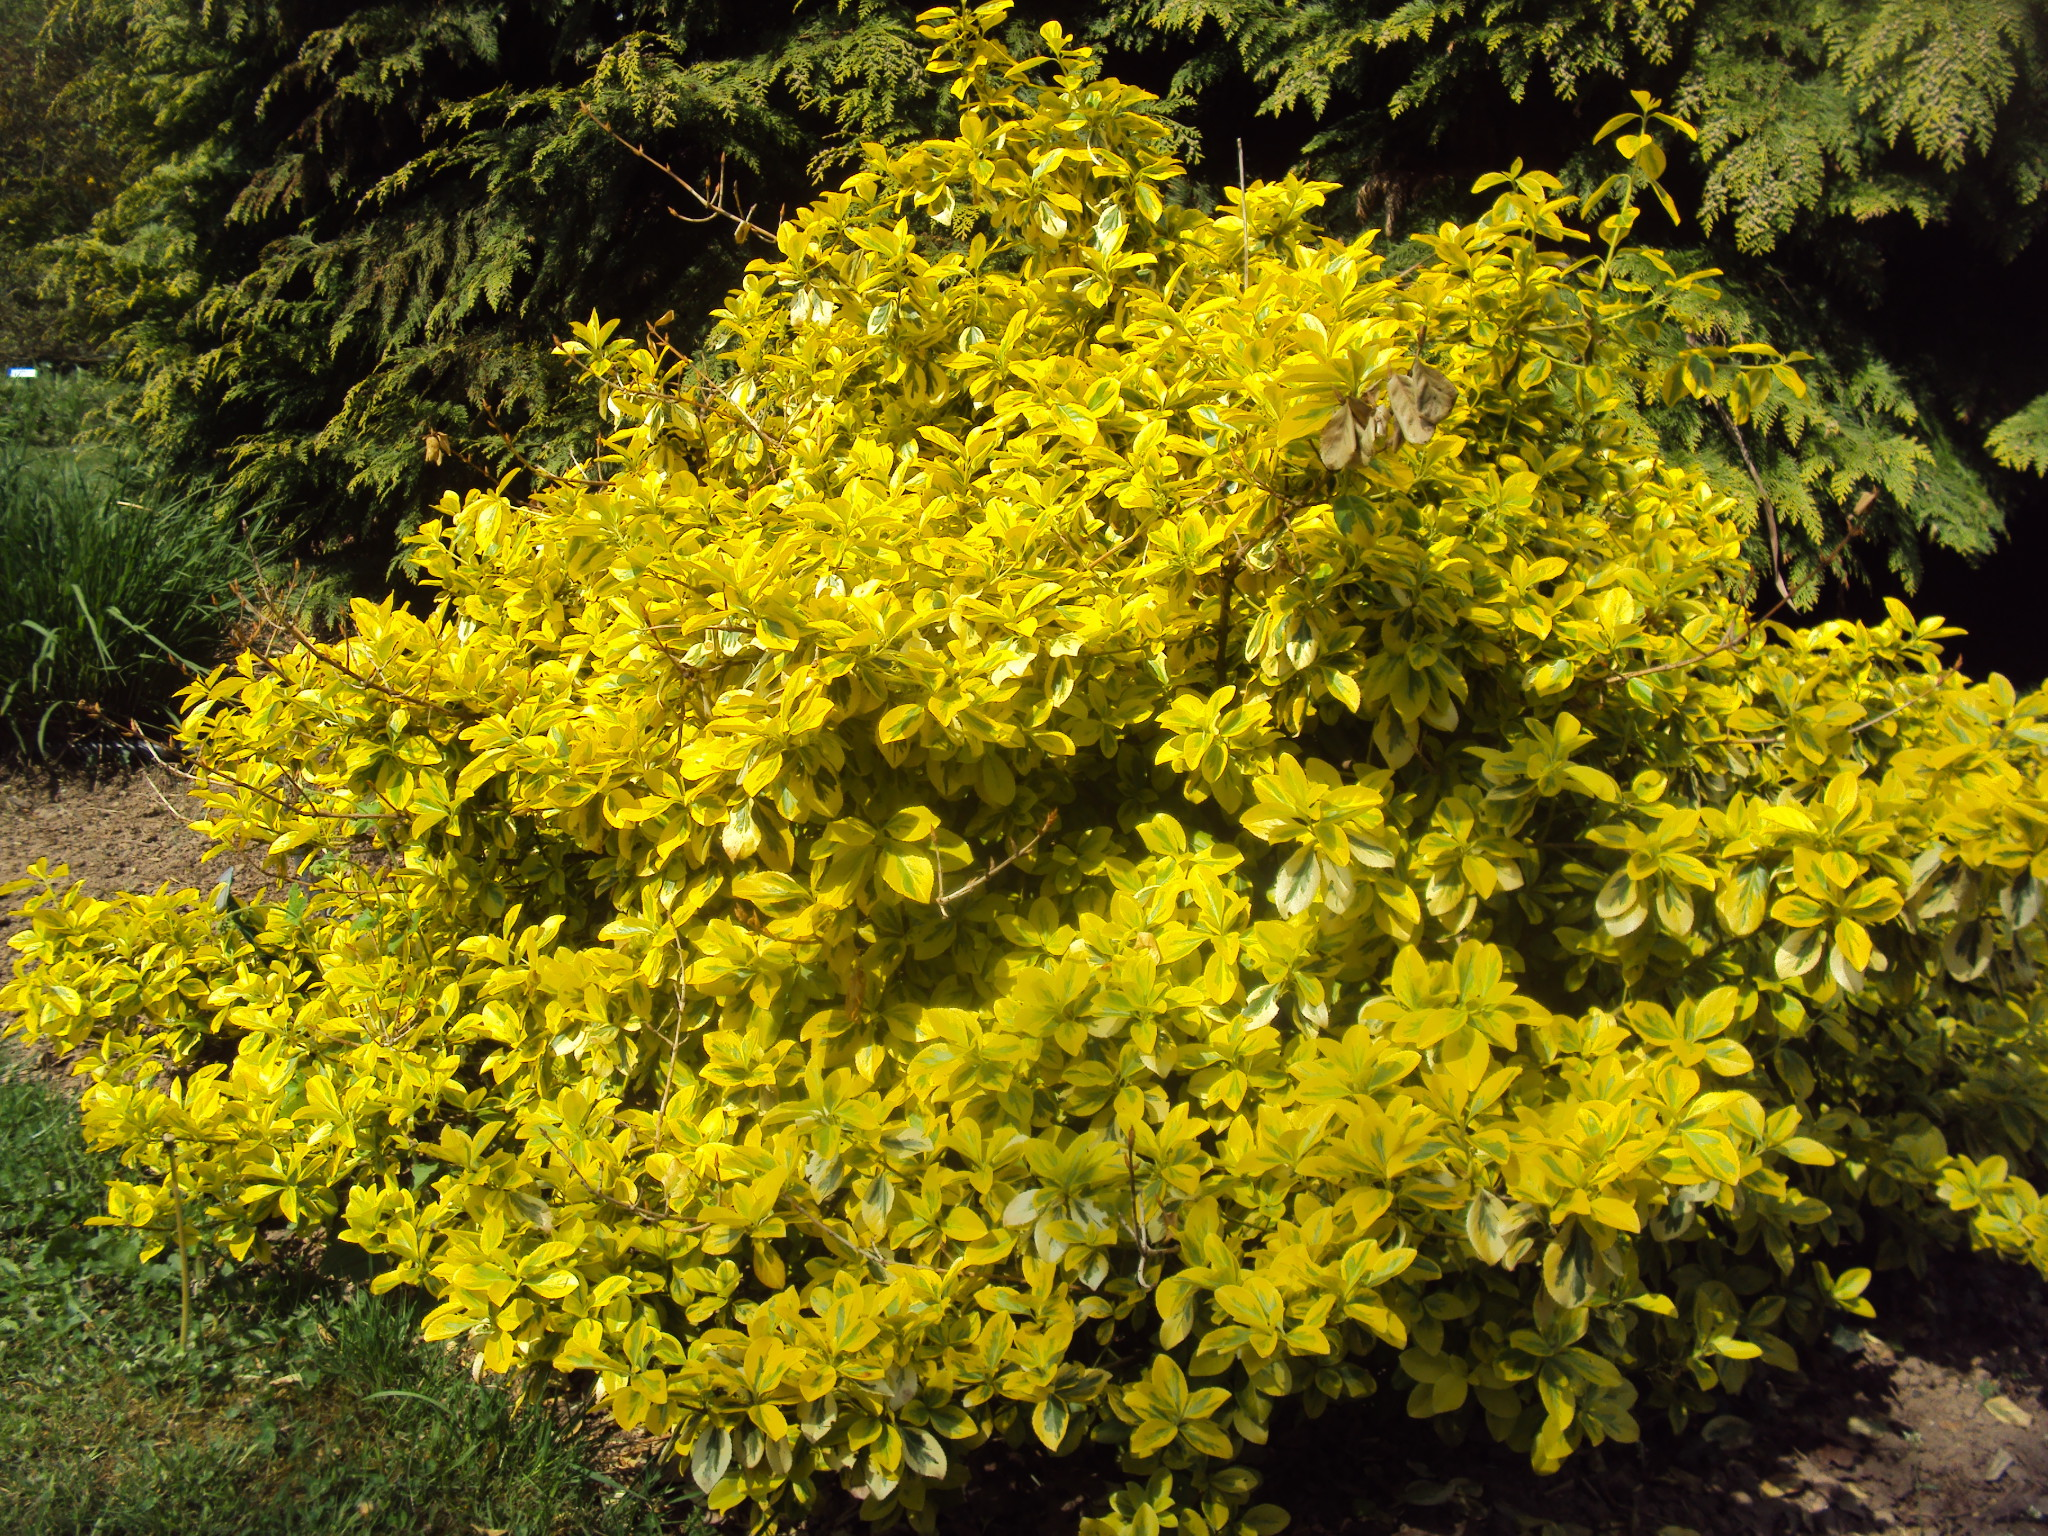 4) Euonymus fortunei 'emerald'n gold'